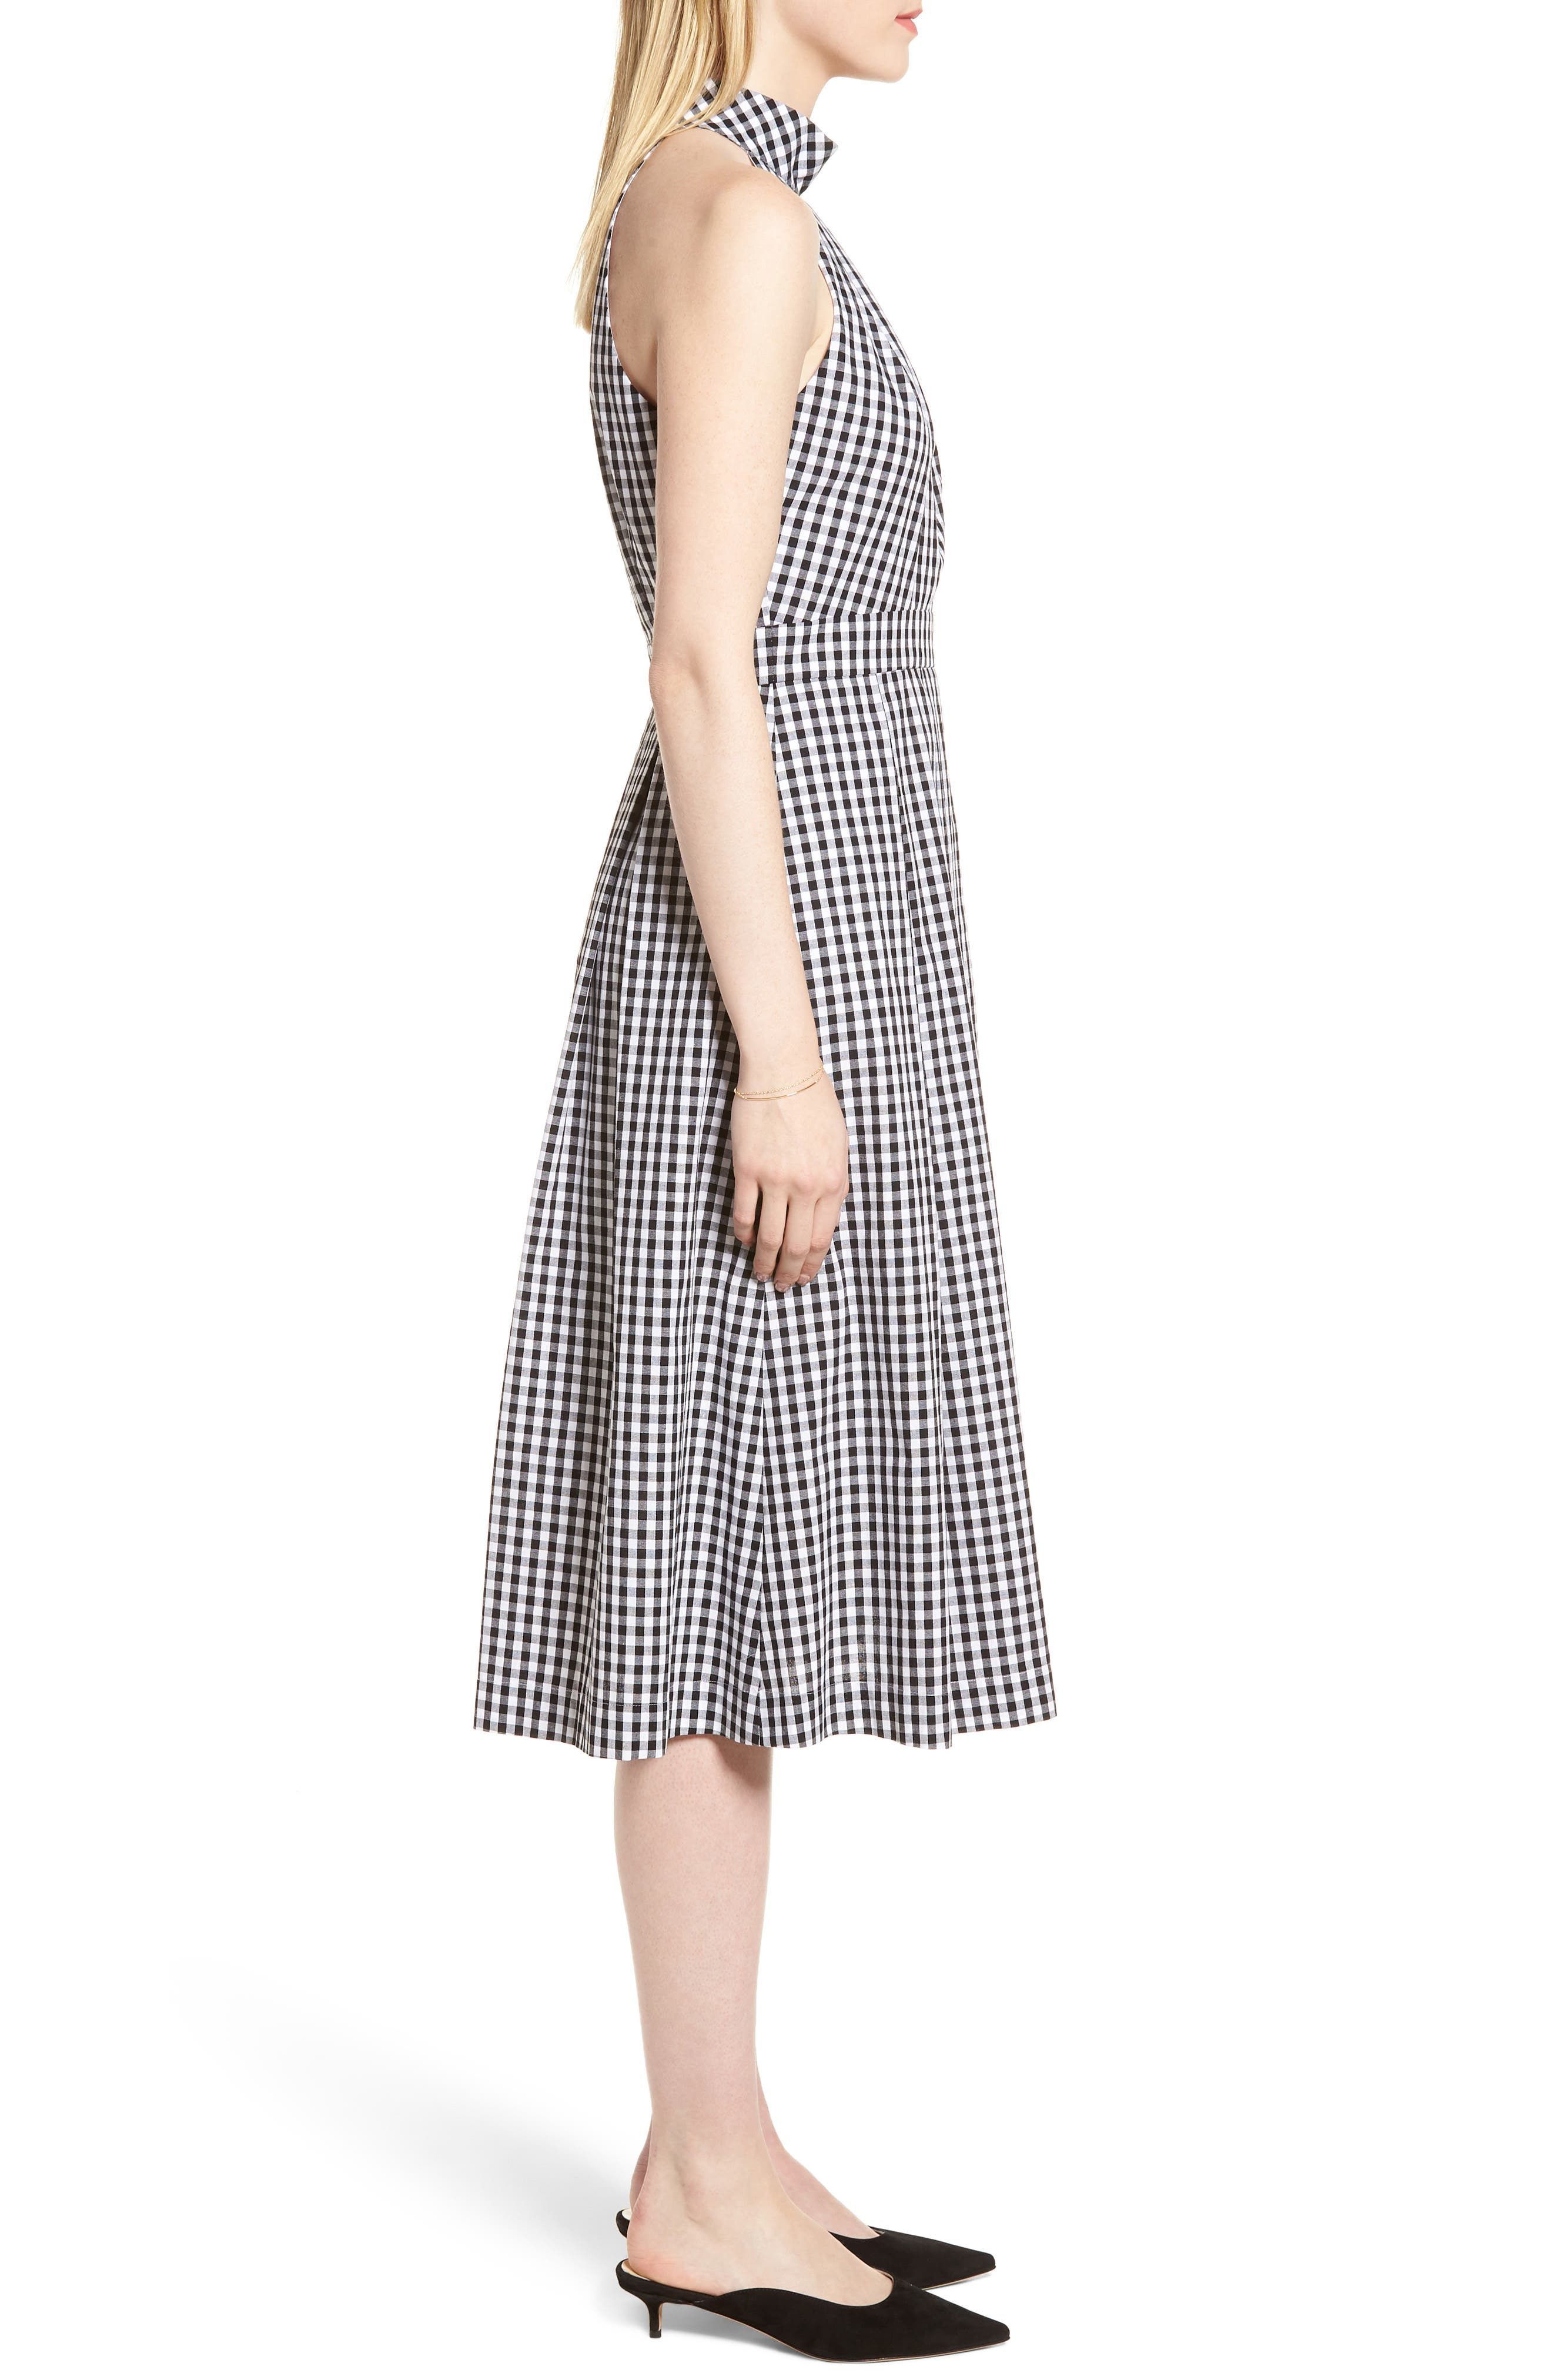 Gingham Halter Dress,                             Alternate thumbnail 3, color,                             Black- White Gingham